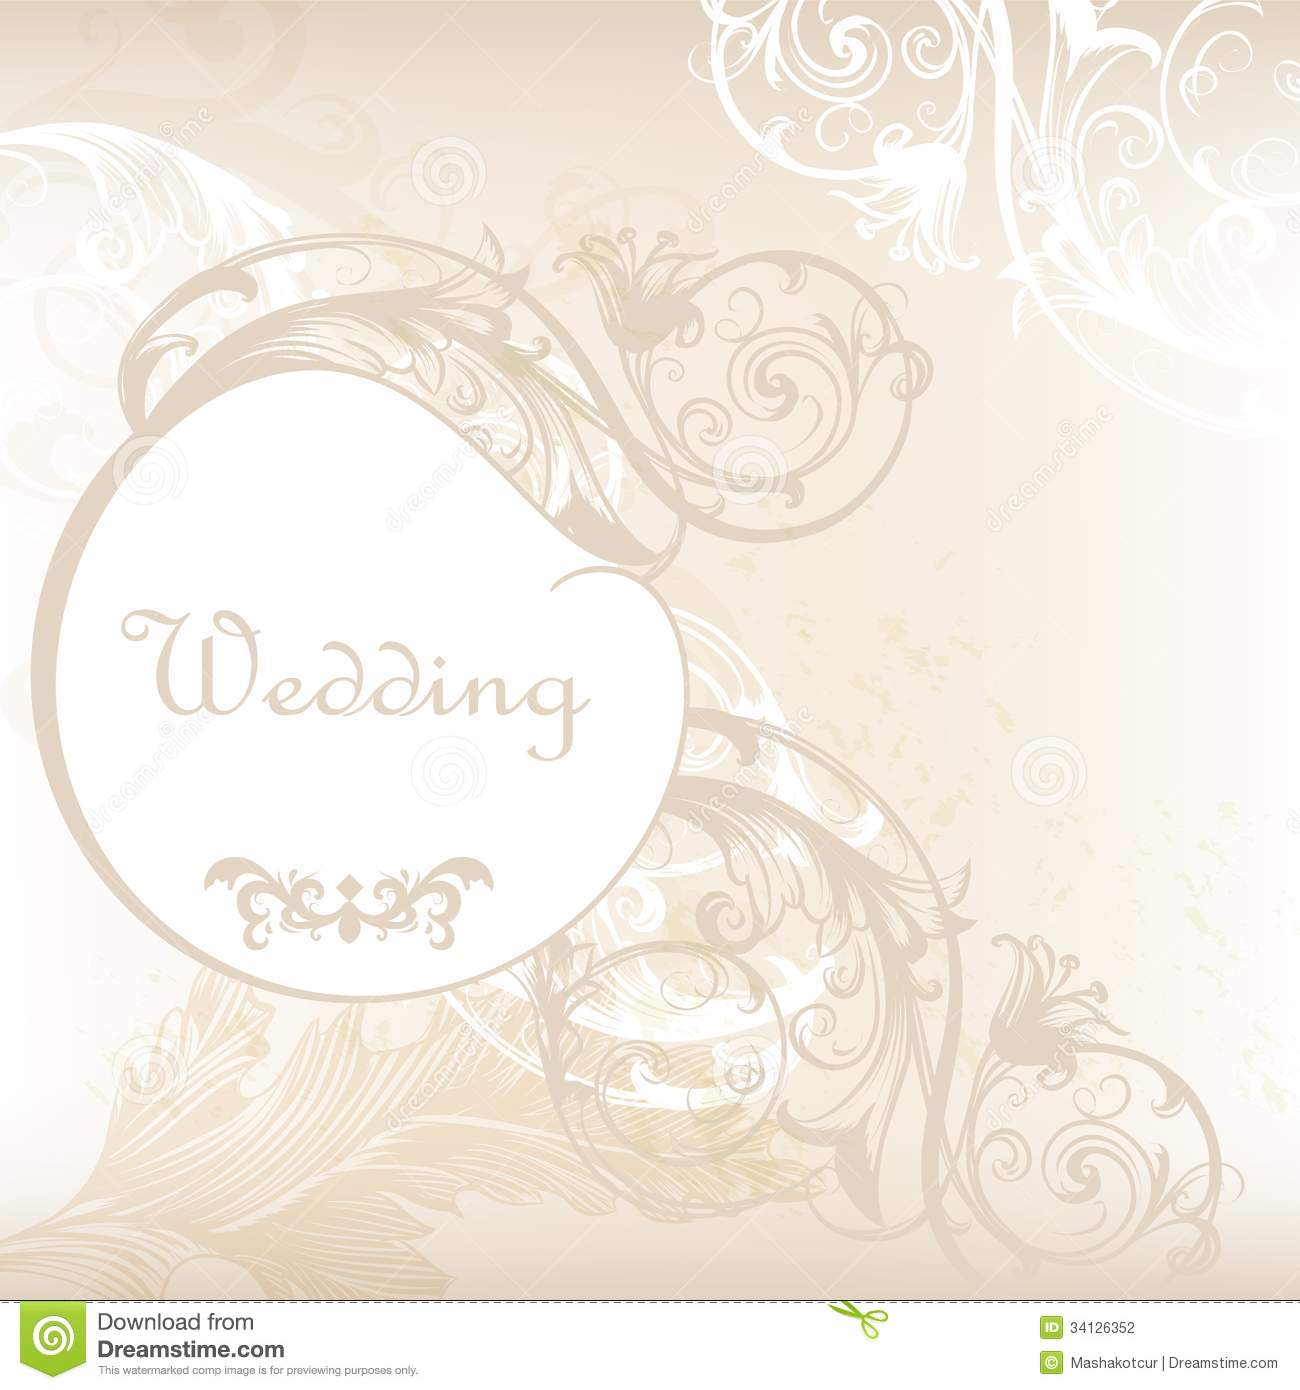 Wedding Invitation Card In White And Grey With Floral Ornament Stock ...